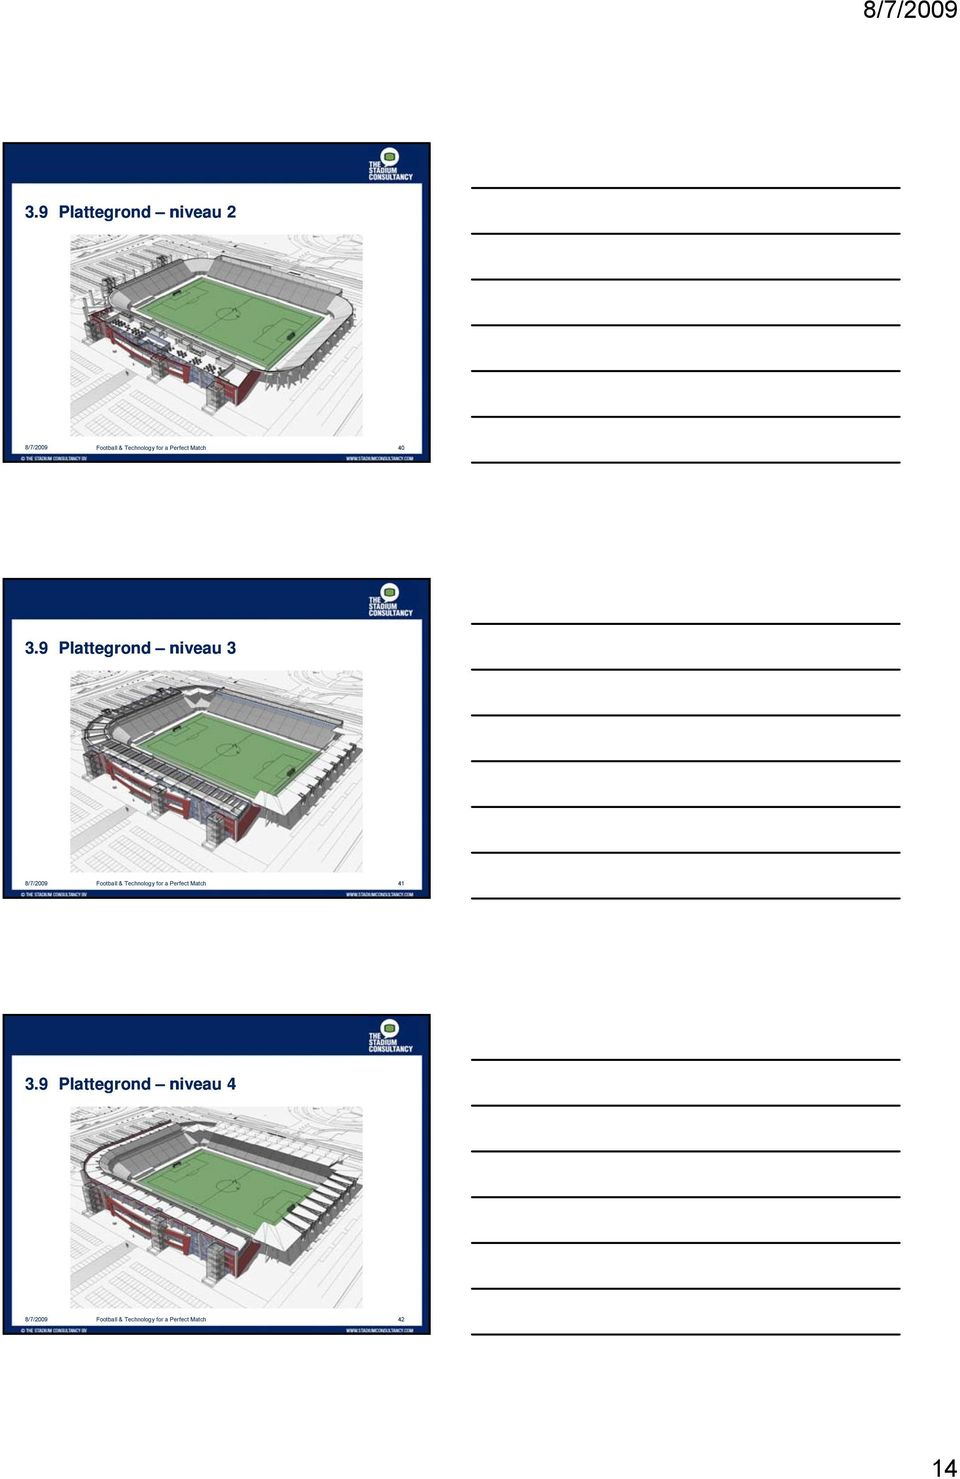 9 Plattegrond niveau 3 8/7/2009 Football & Technology for a